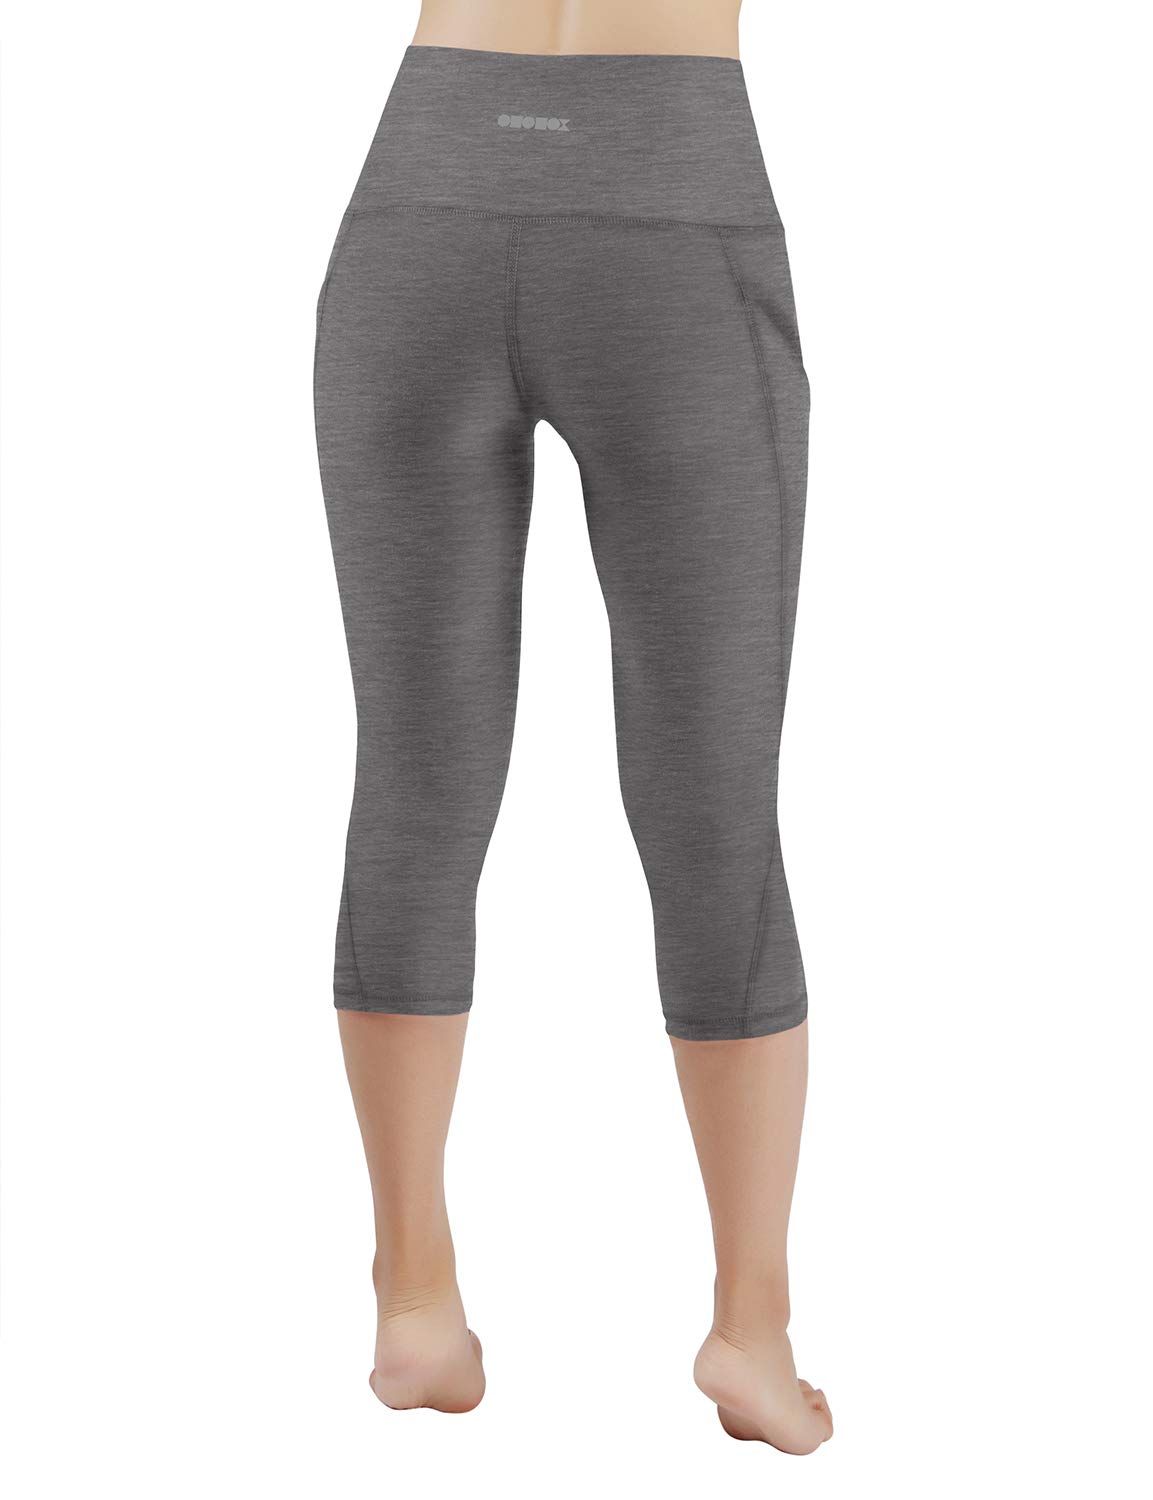 ODODOS High Waist Out Pocket Yoga Capris Pants Tummy Control Workout Running 4 Way Stretch Yoga Leggings,Gray,X-Small by ODODOS (Image #3)